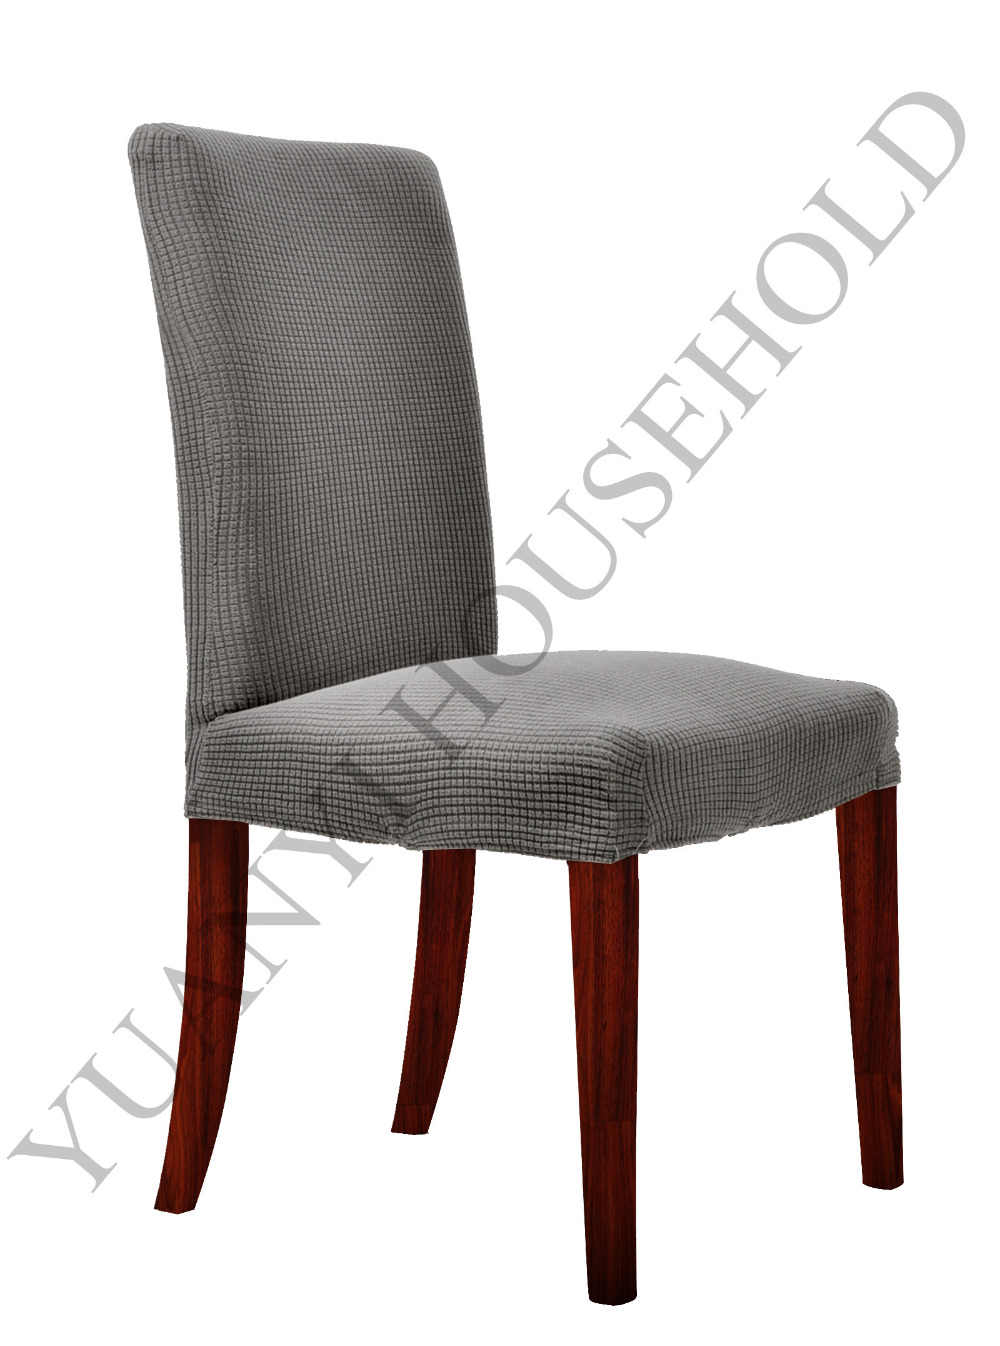 Fabric Dining Room Chair Covers Online Get Cheap Fabric Dining Room Chair Covers Aliexpresscom